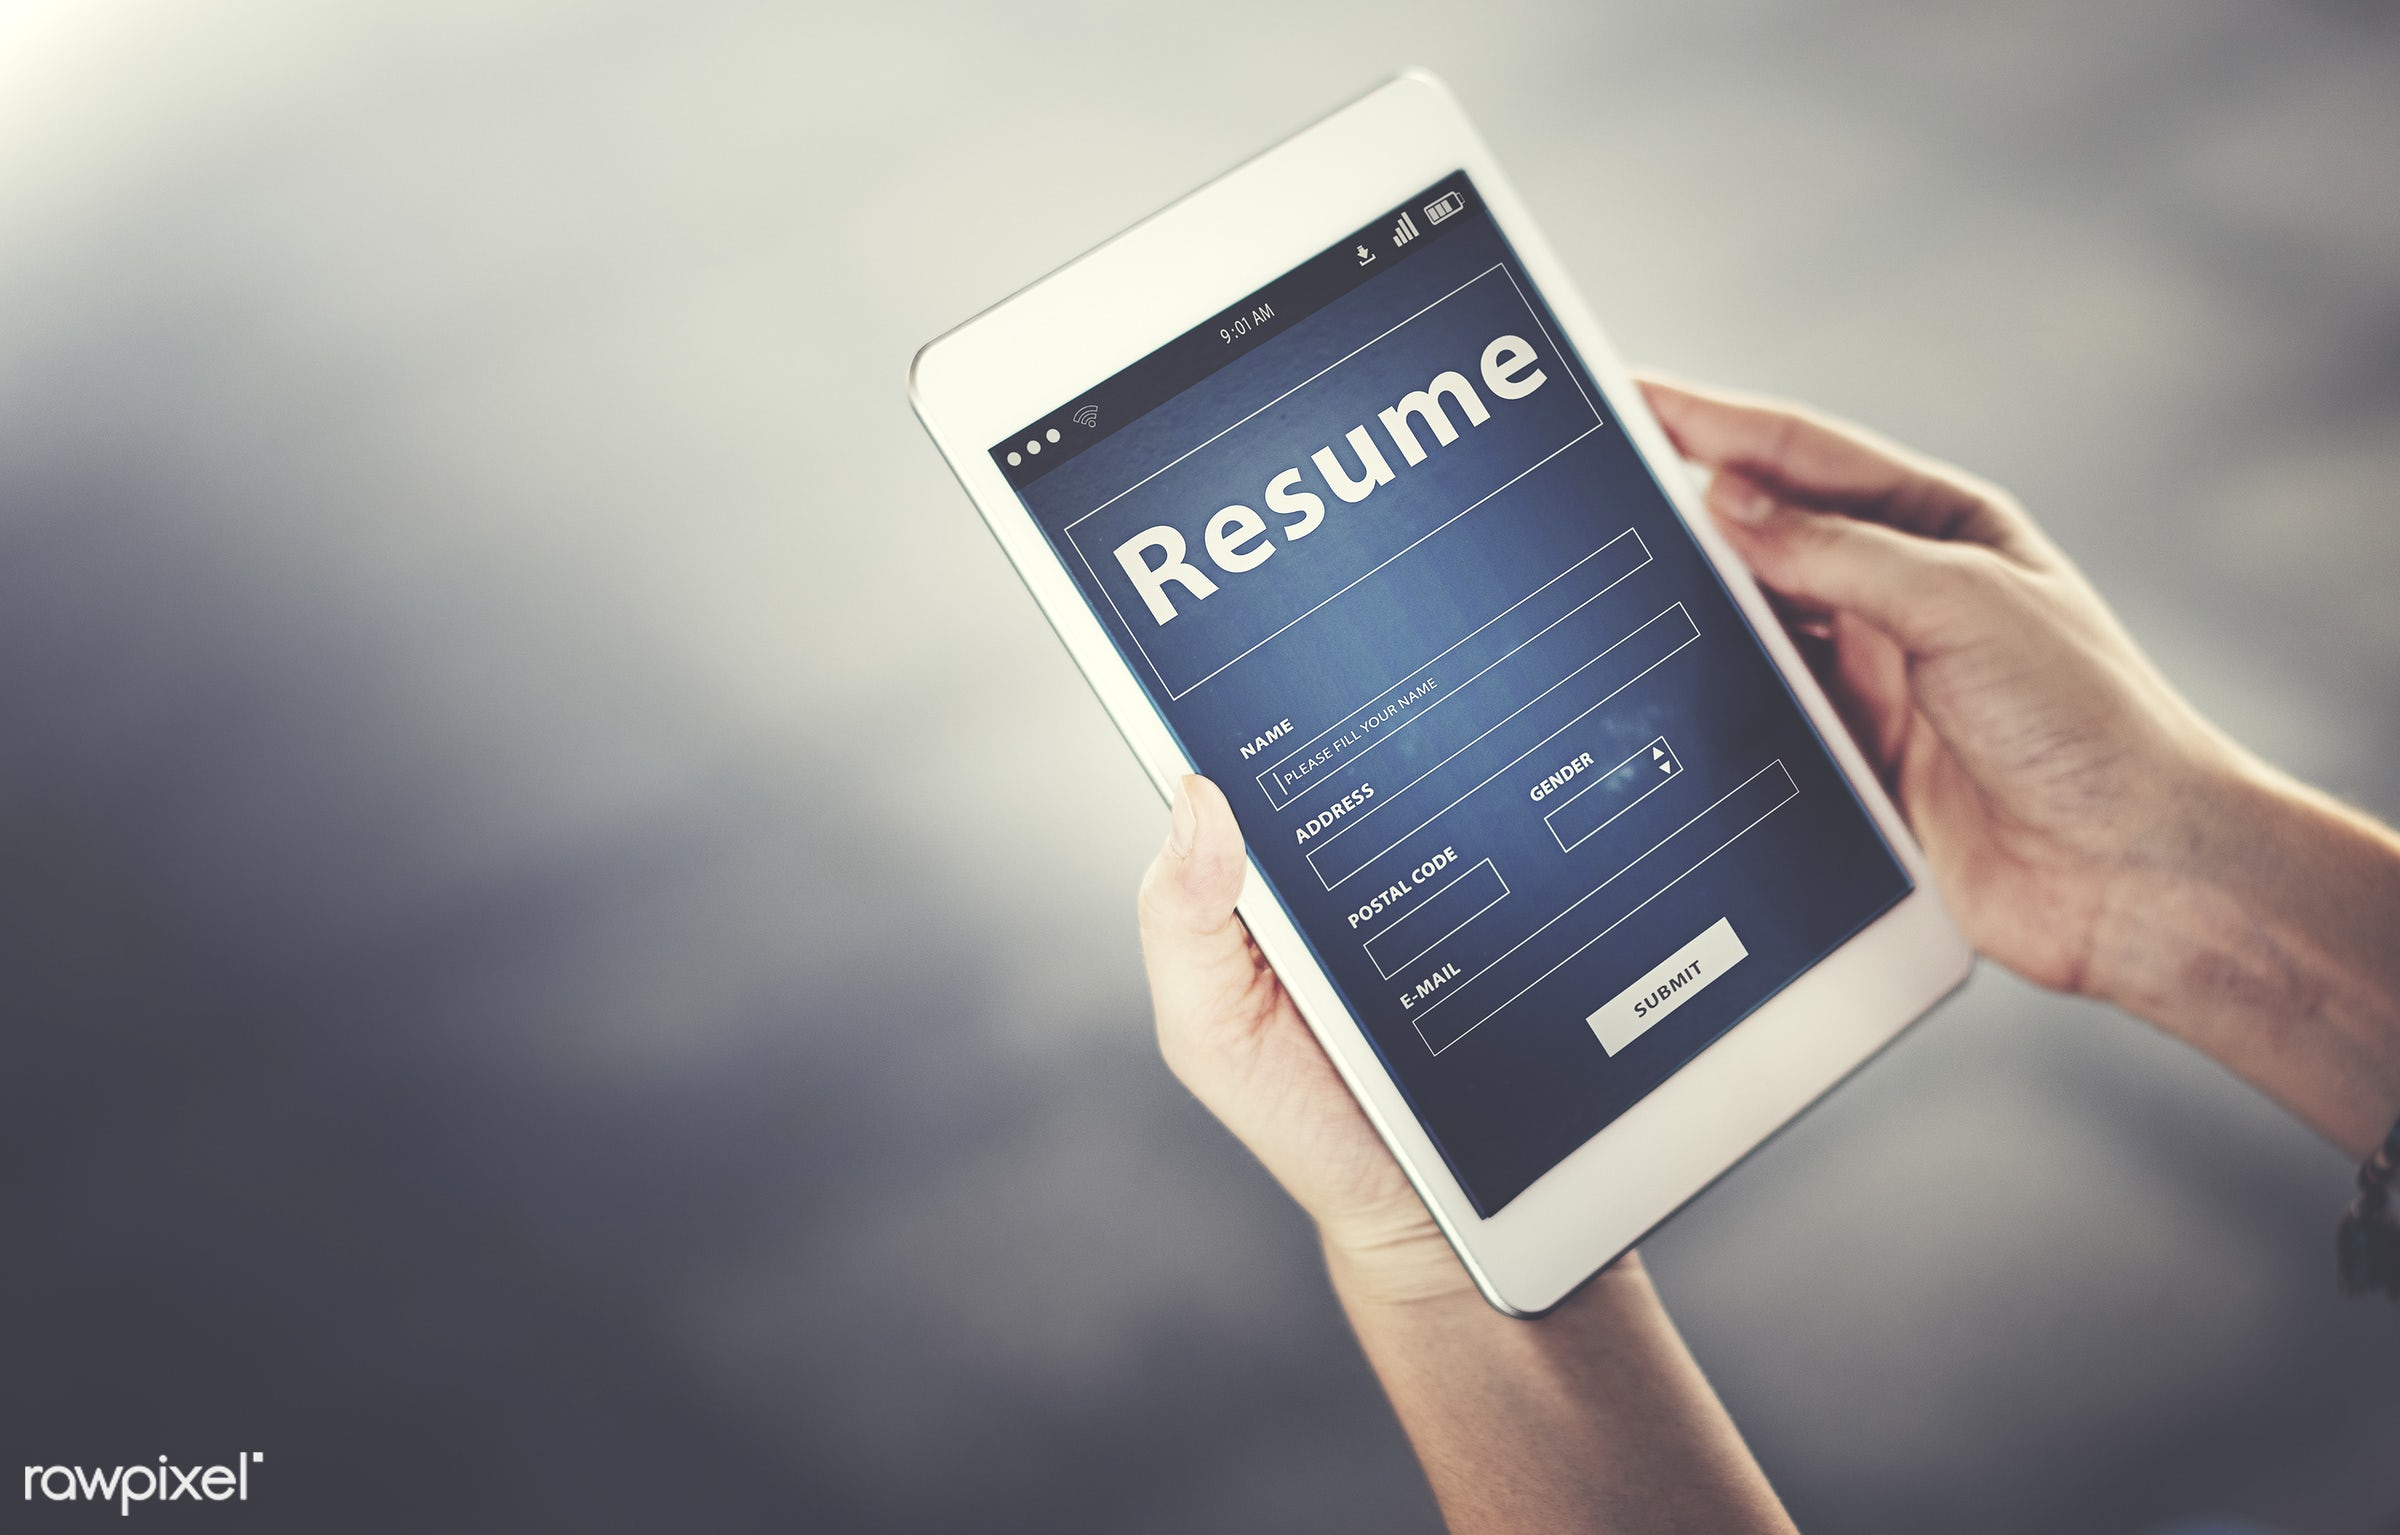 recruitment, advanced technology, application, blog, career, communication, computer, connection, data, devices, digital,...